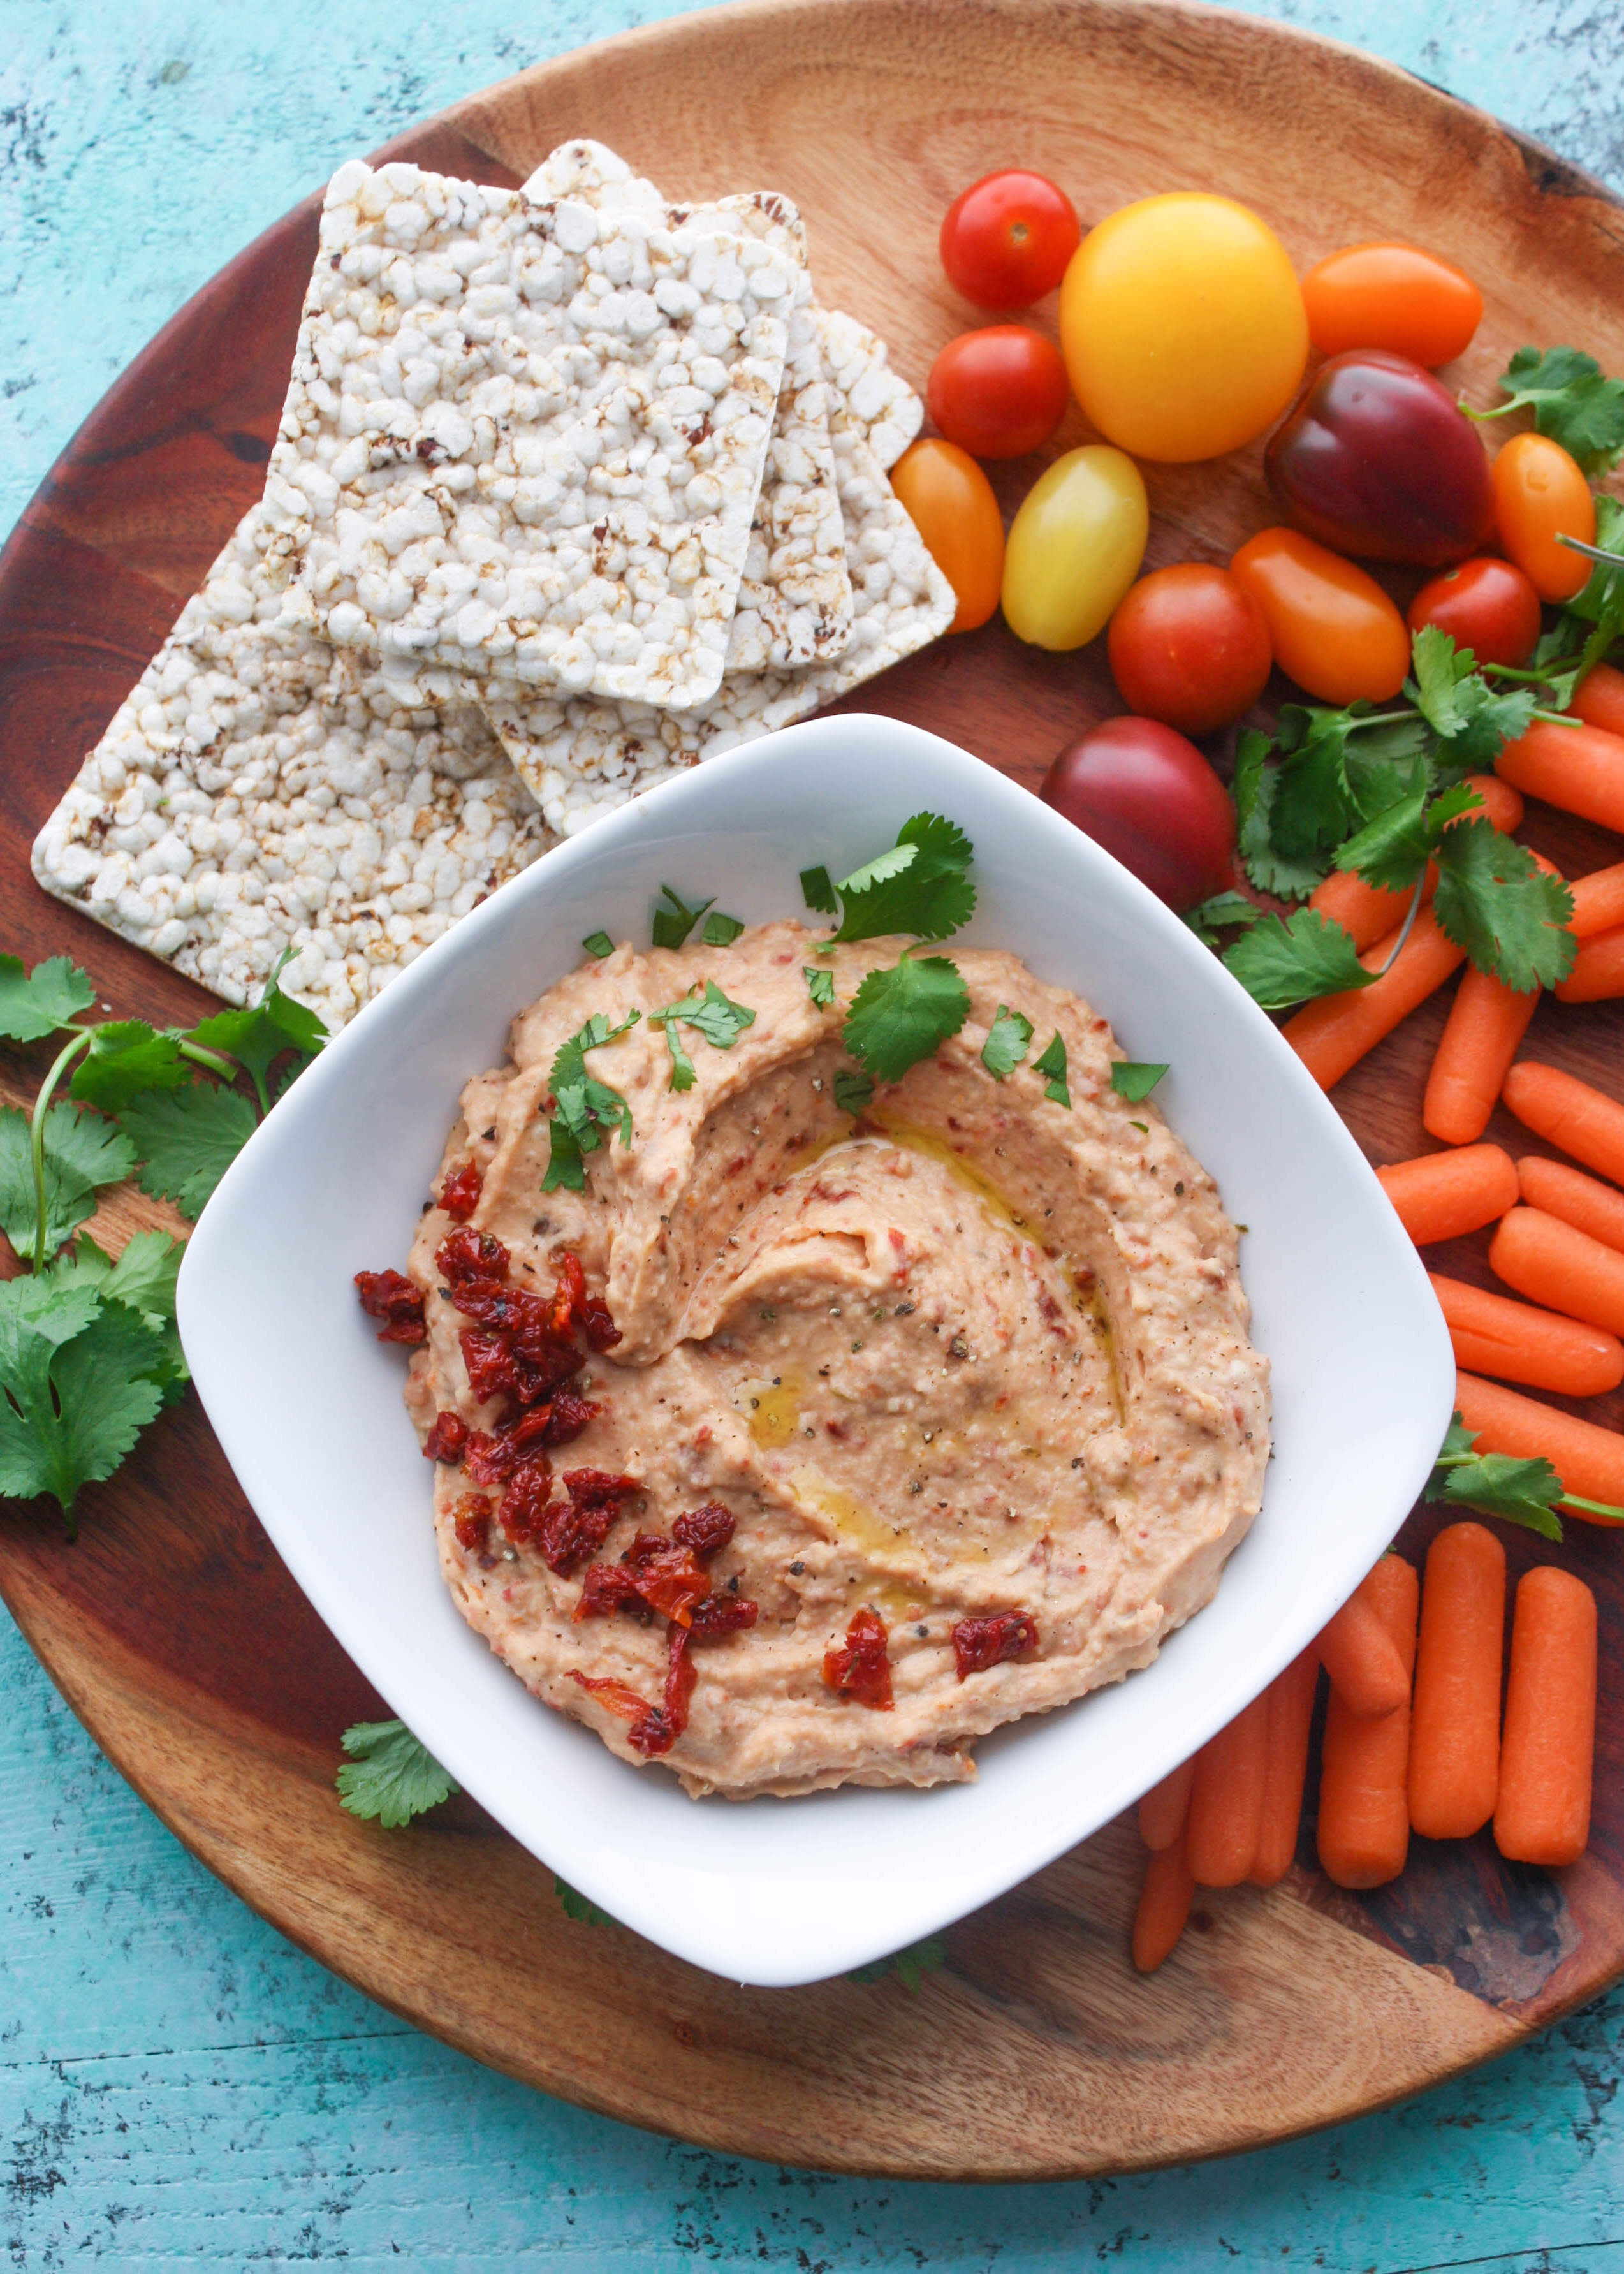 Roasted Garlic and Sun-Dried Tomato Hummus and FAGE Total Split Cups make wonderful snack options. Roasted Garlic and Sun-Dried Tomato Hummus and FAGE Total Split Cups are perfect for snack time!